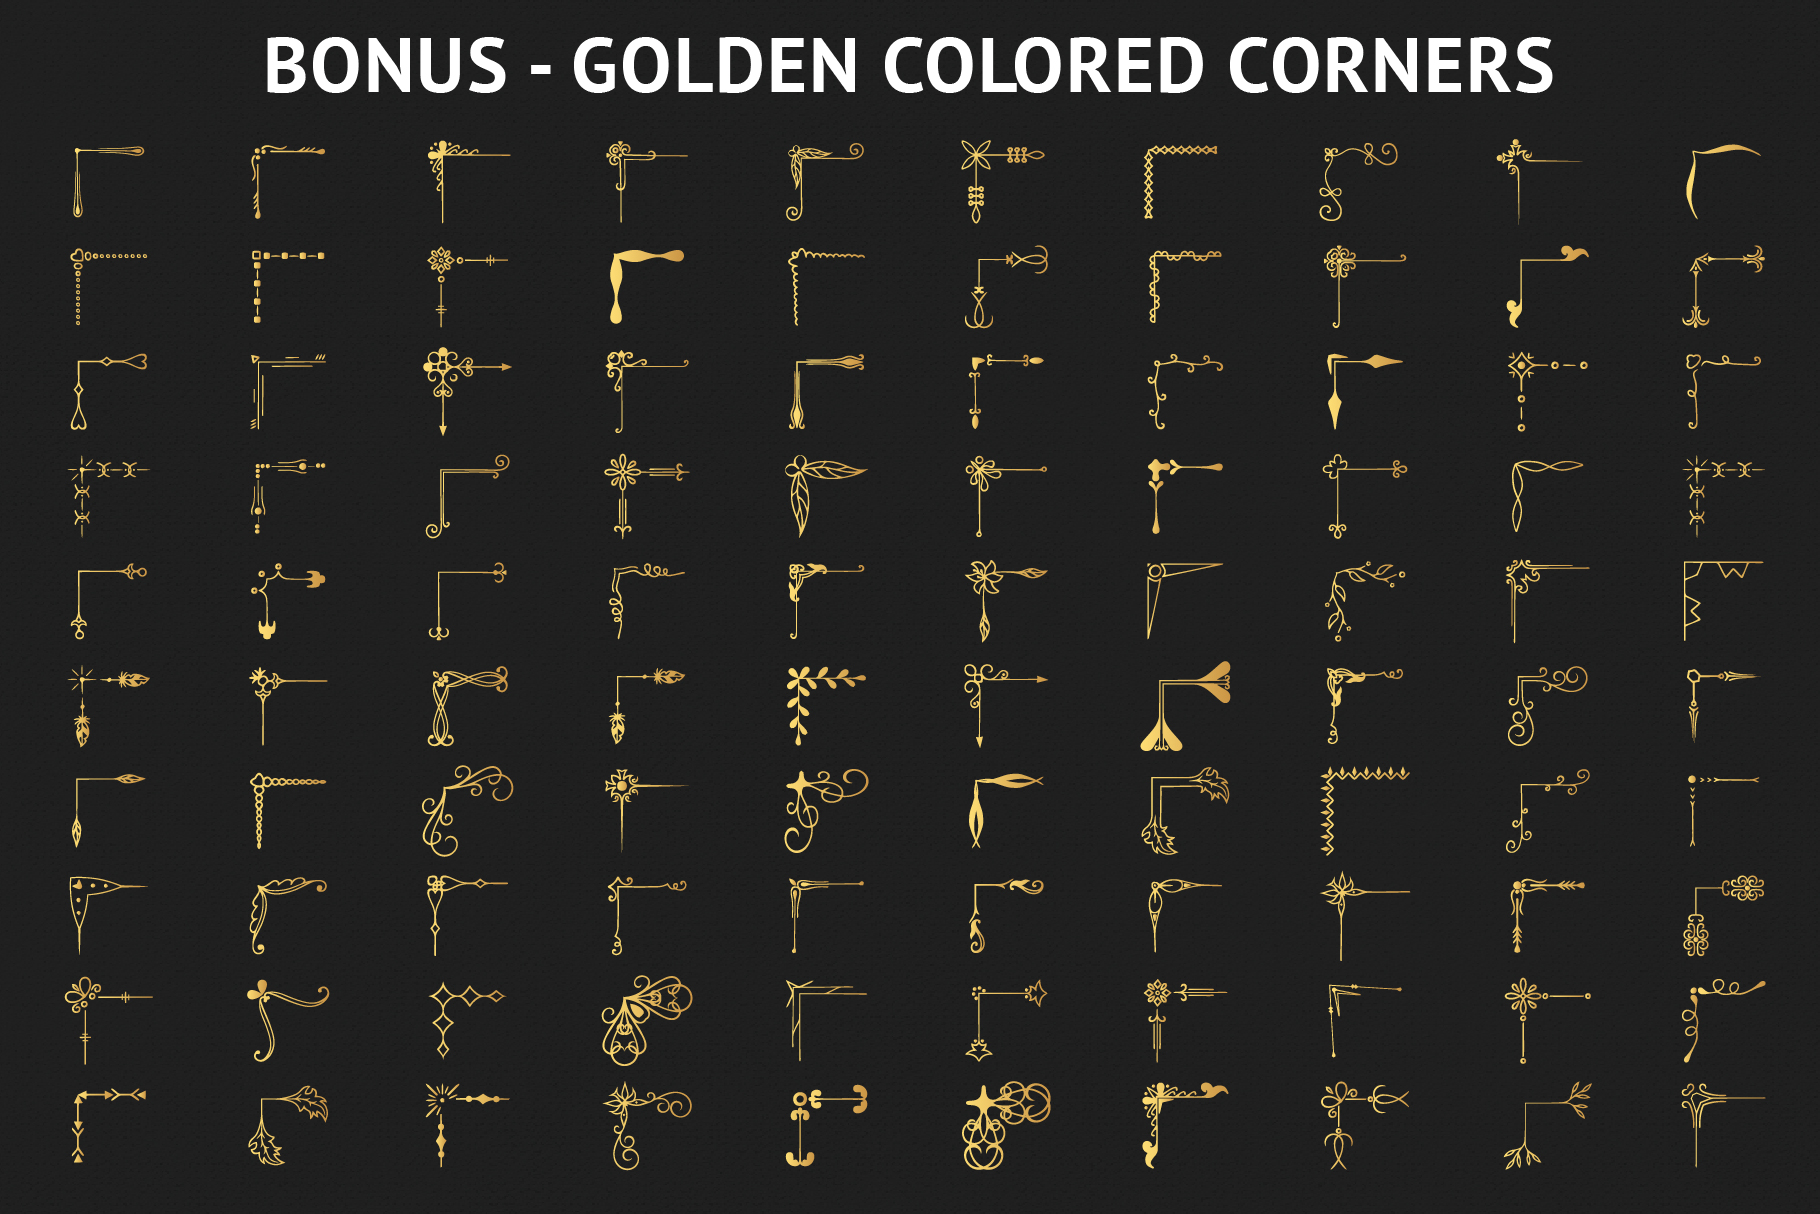 100 Hand Drawn Ornate Corners and Borders example image 7